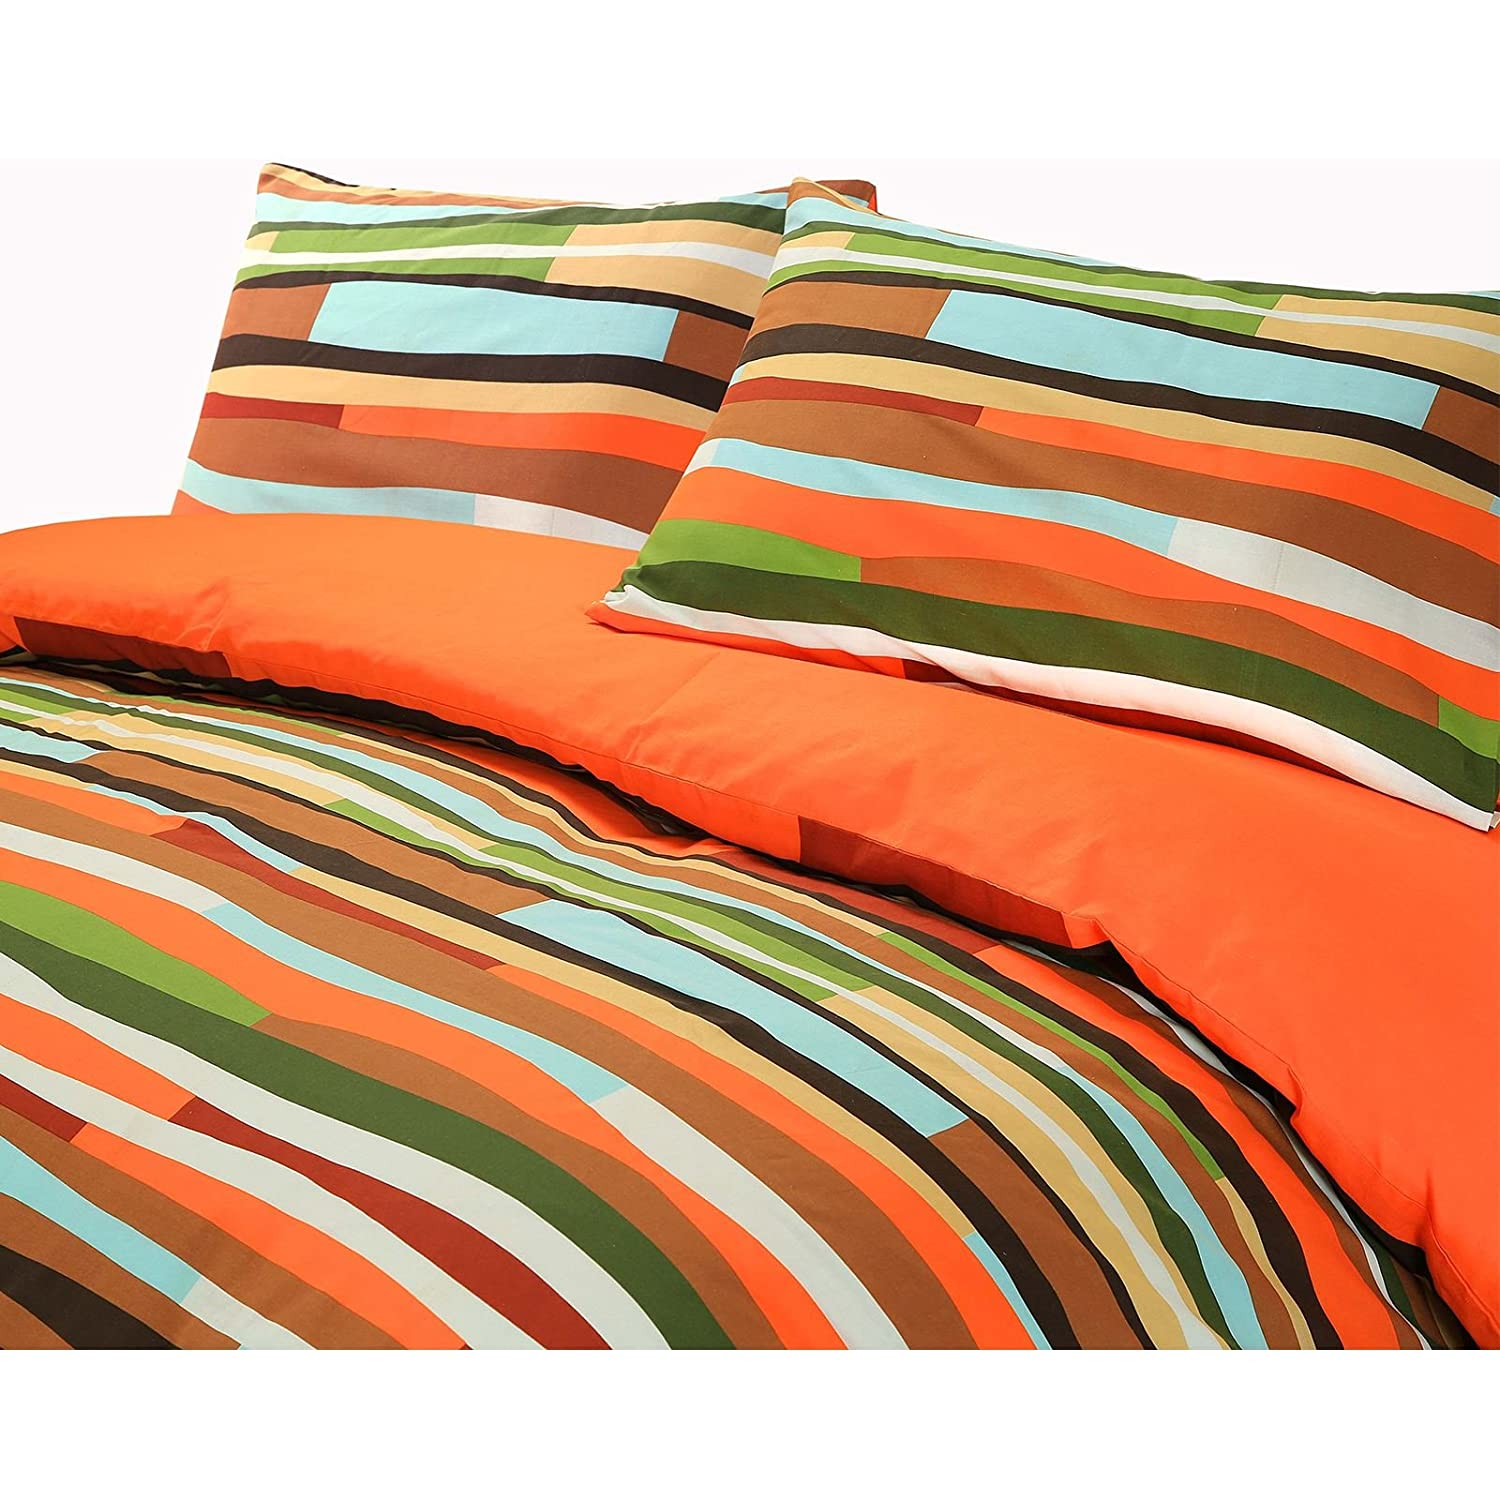 remodel sets covers newport comforter regard bedding jill from bed collection on kite l set orange with rosenwald pillowcase duvet to eeeb and cover linen